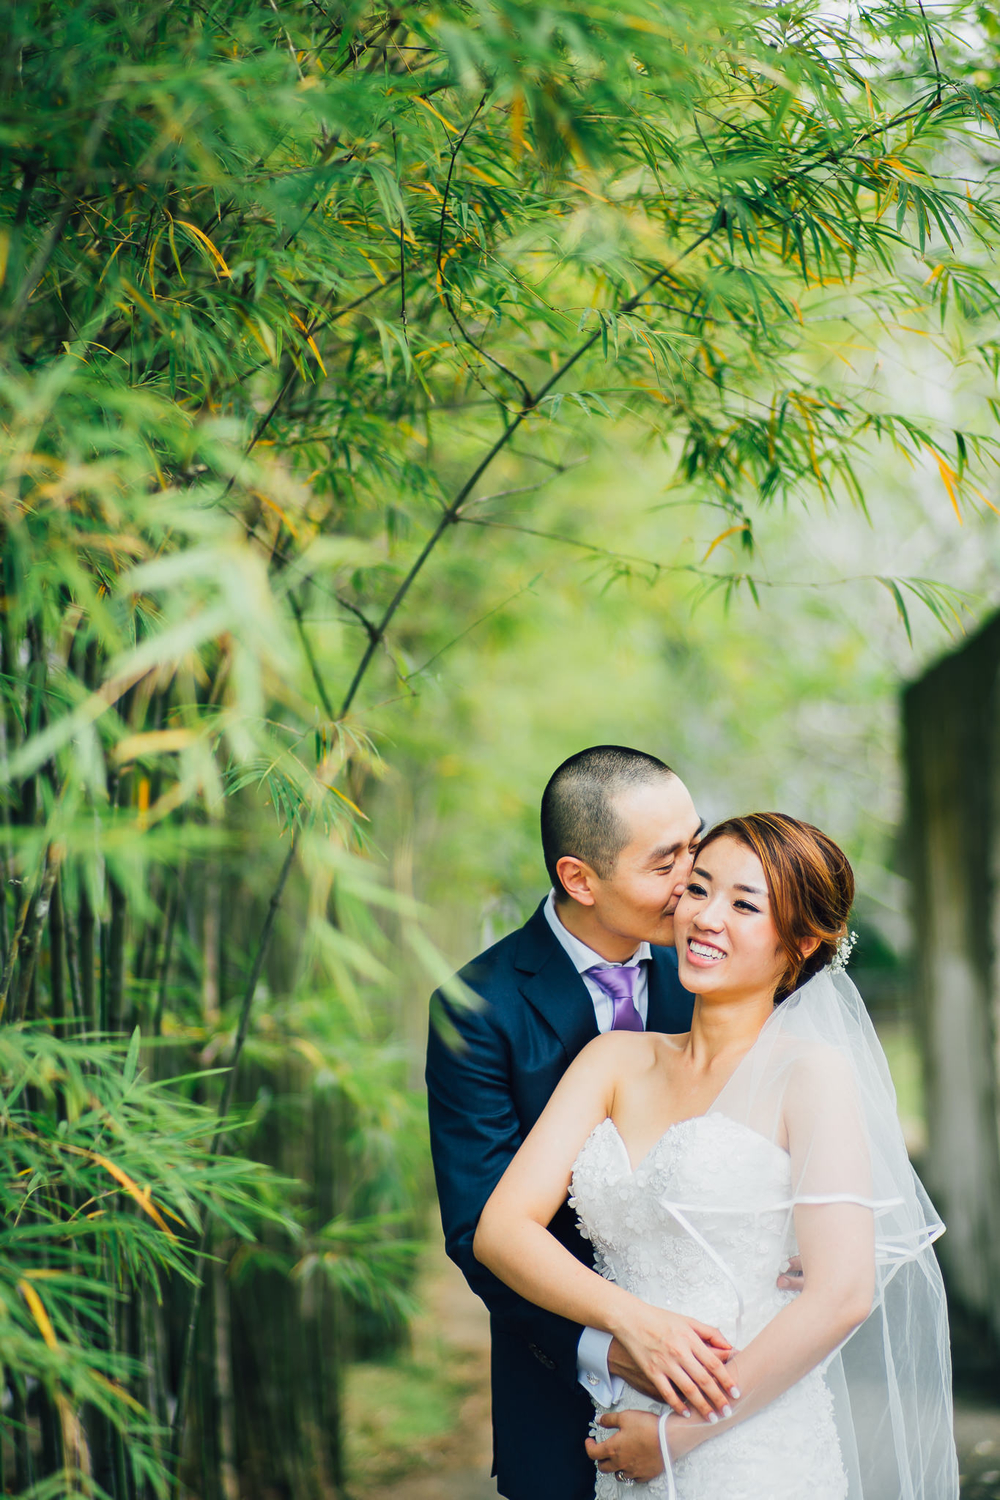 Singapore Wedding Photographer Garden asia shamrock chapel actual day wedding coverage (102 of 110).JPG